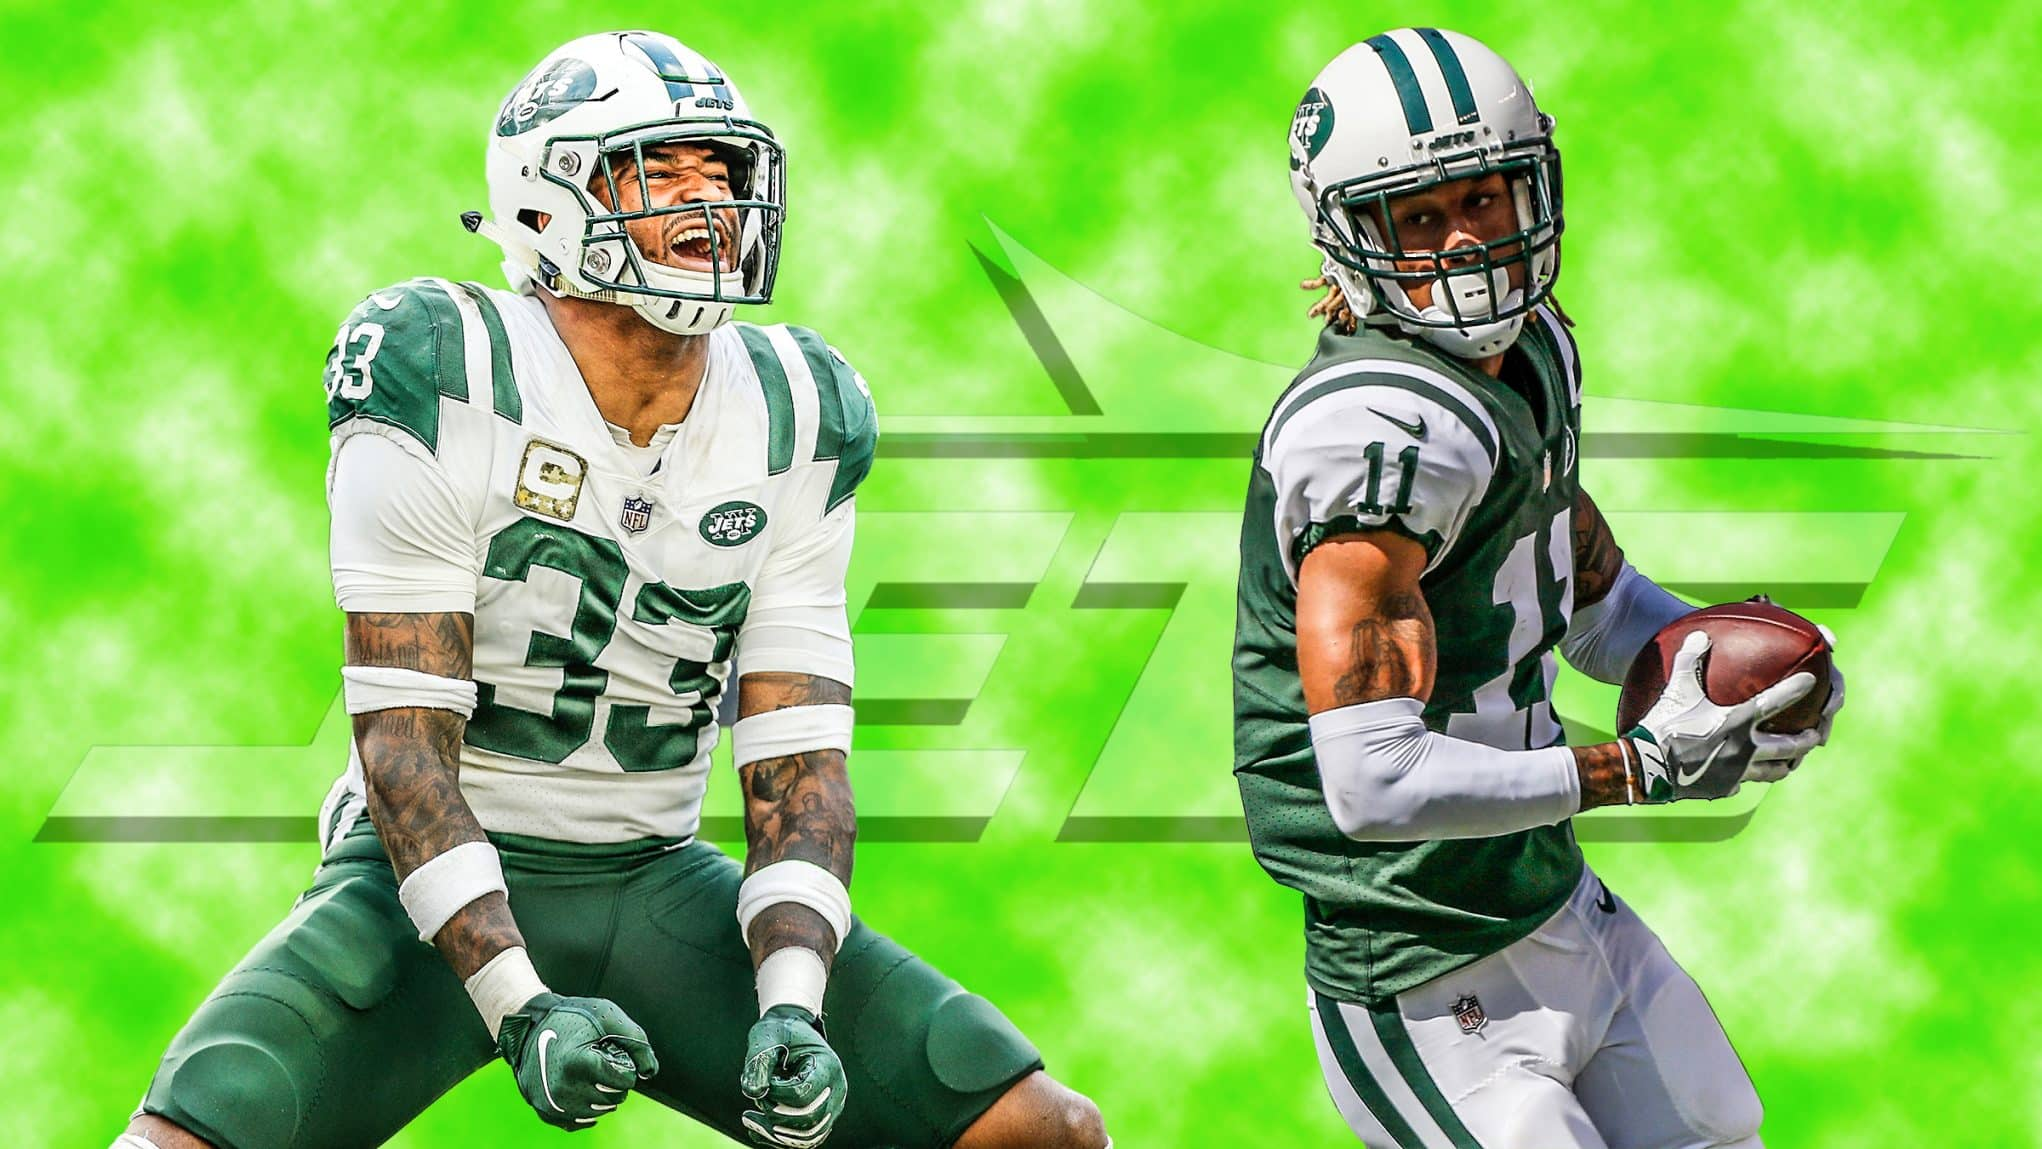 77ad823b93d New York Jets stats dump: Robby Anderson finished 2018 red hot